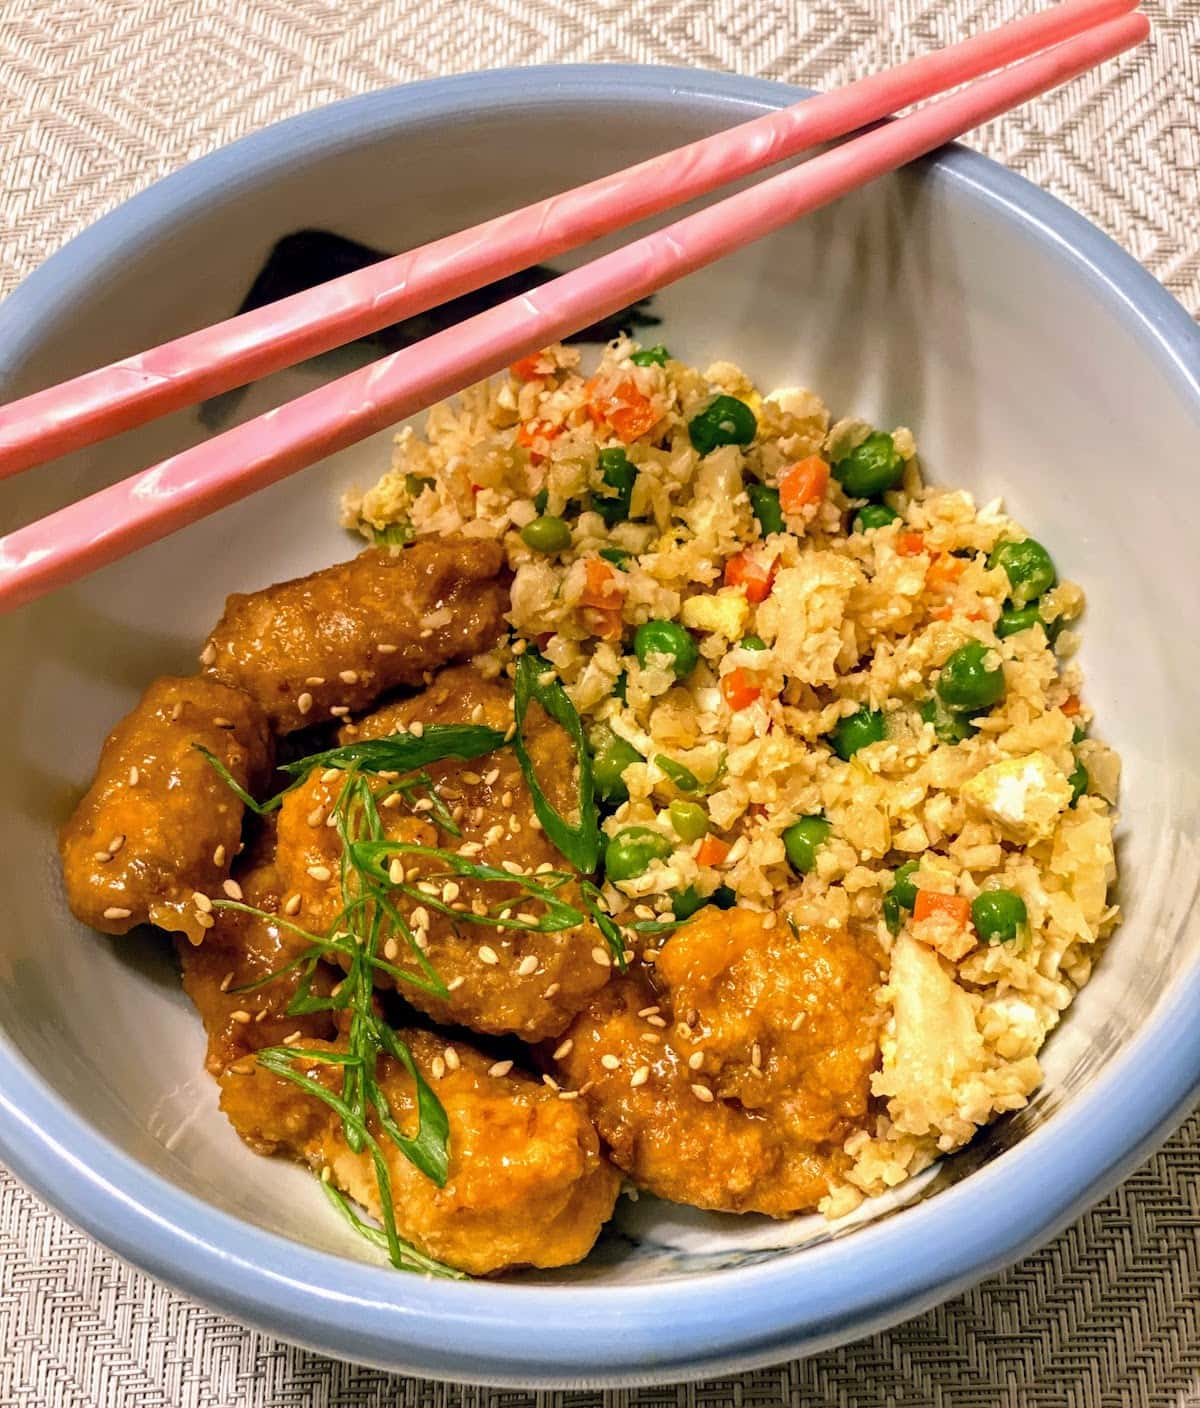 Cauliflower Egg Fried Rice with Orange Sesame Chicken in a Bowl with Pink Chopsticks